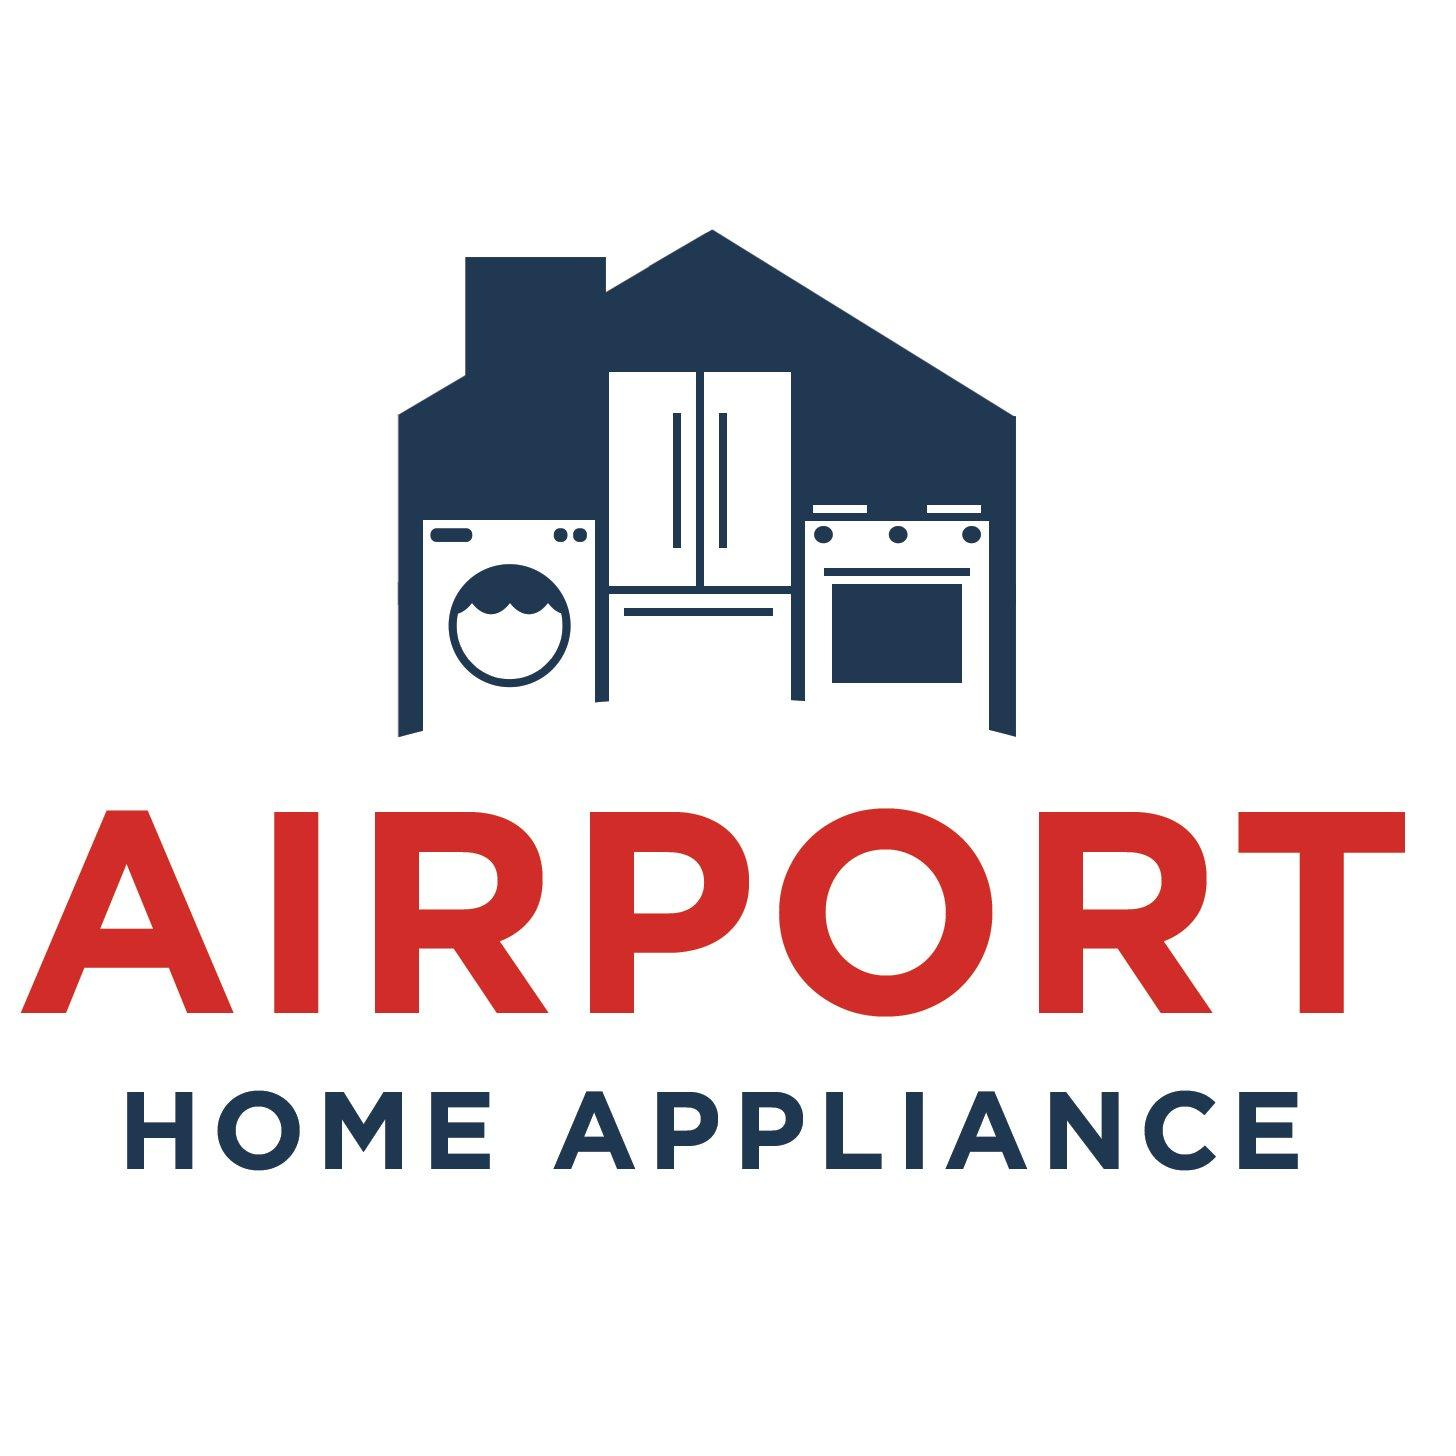 Hilarious Hotels Nearby Airport Home Appliance Village Parkway Ca Appliances Airport Home Appliance Bascom Airport Home Appliance Redwood City houzz-02 Airport Home Appliance